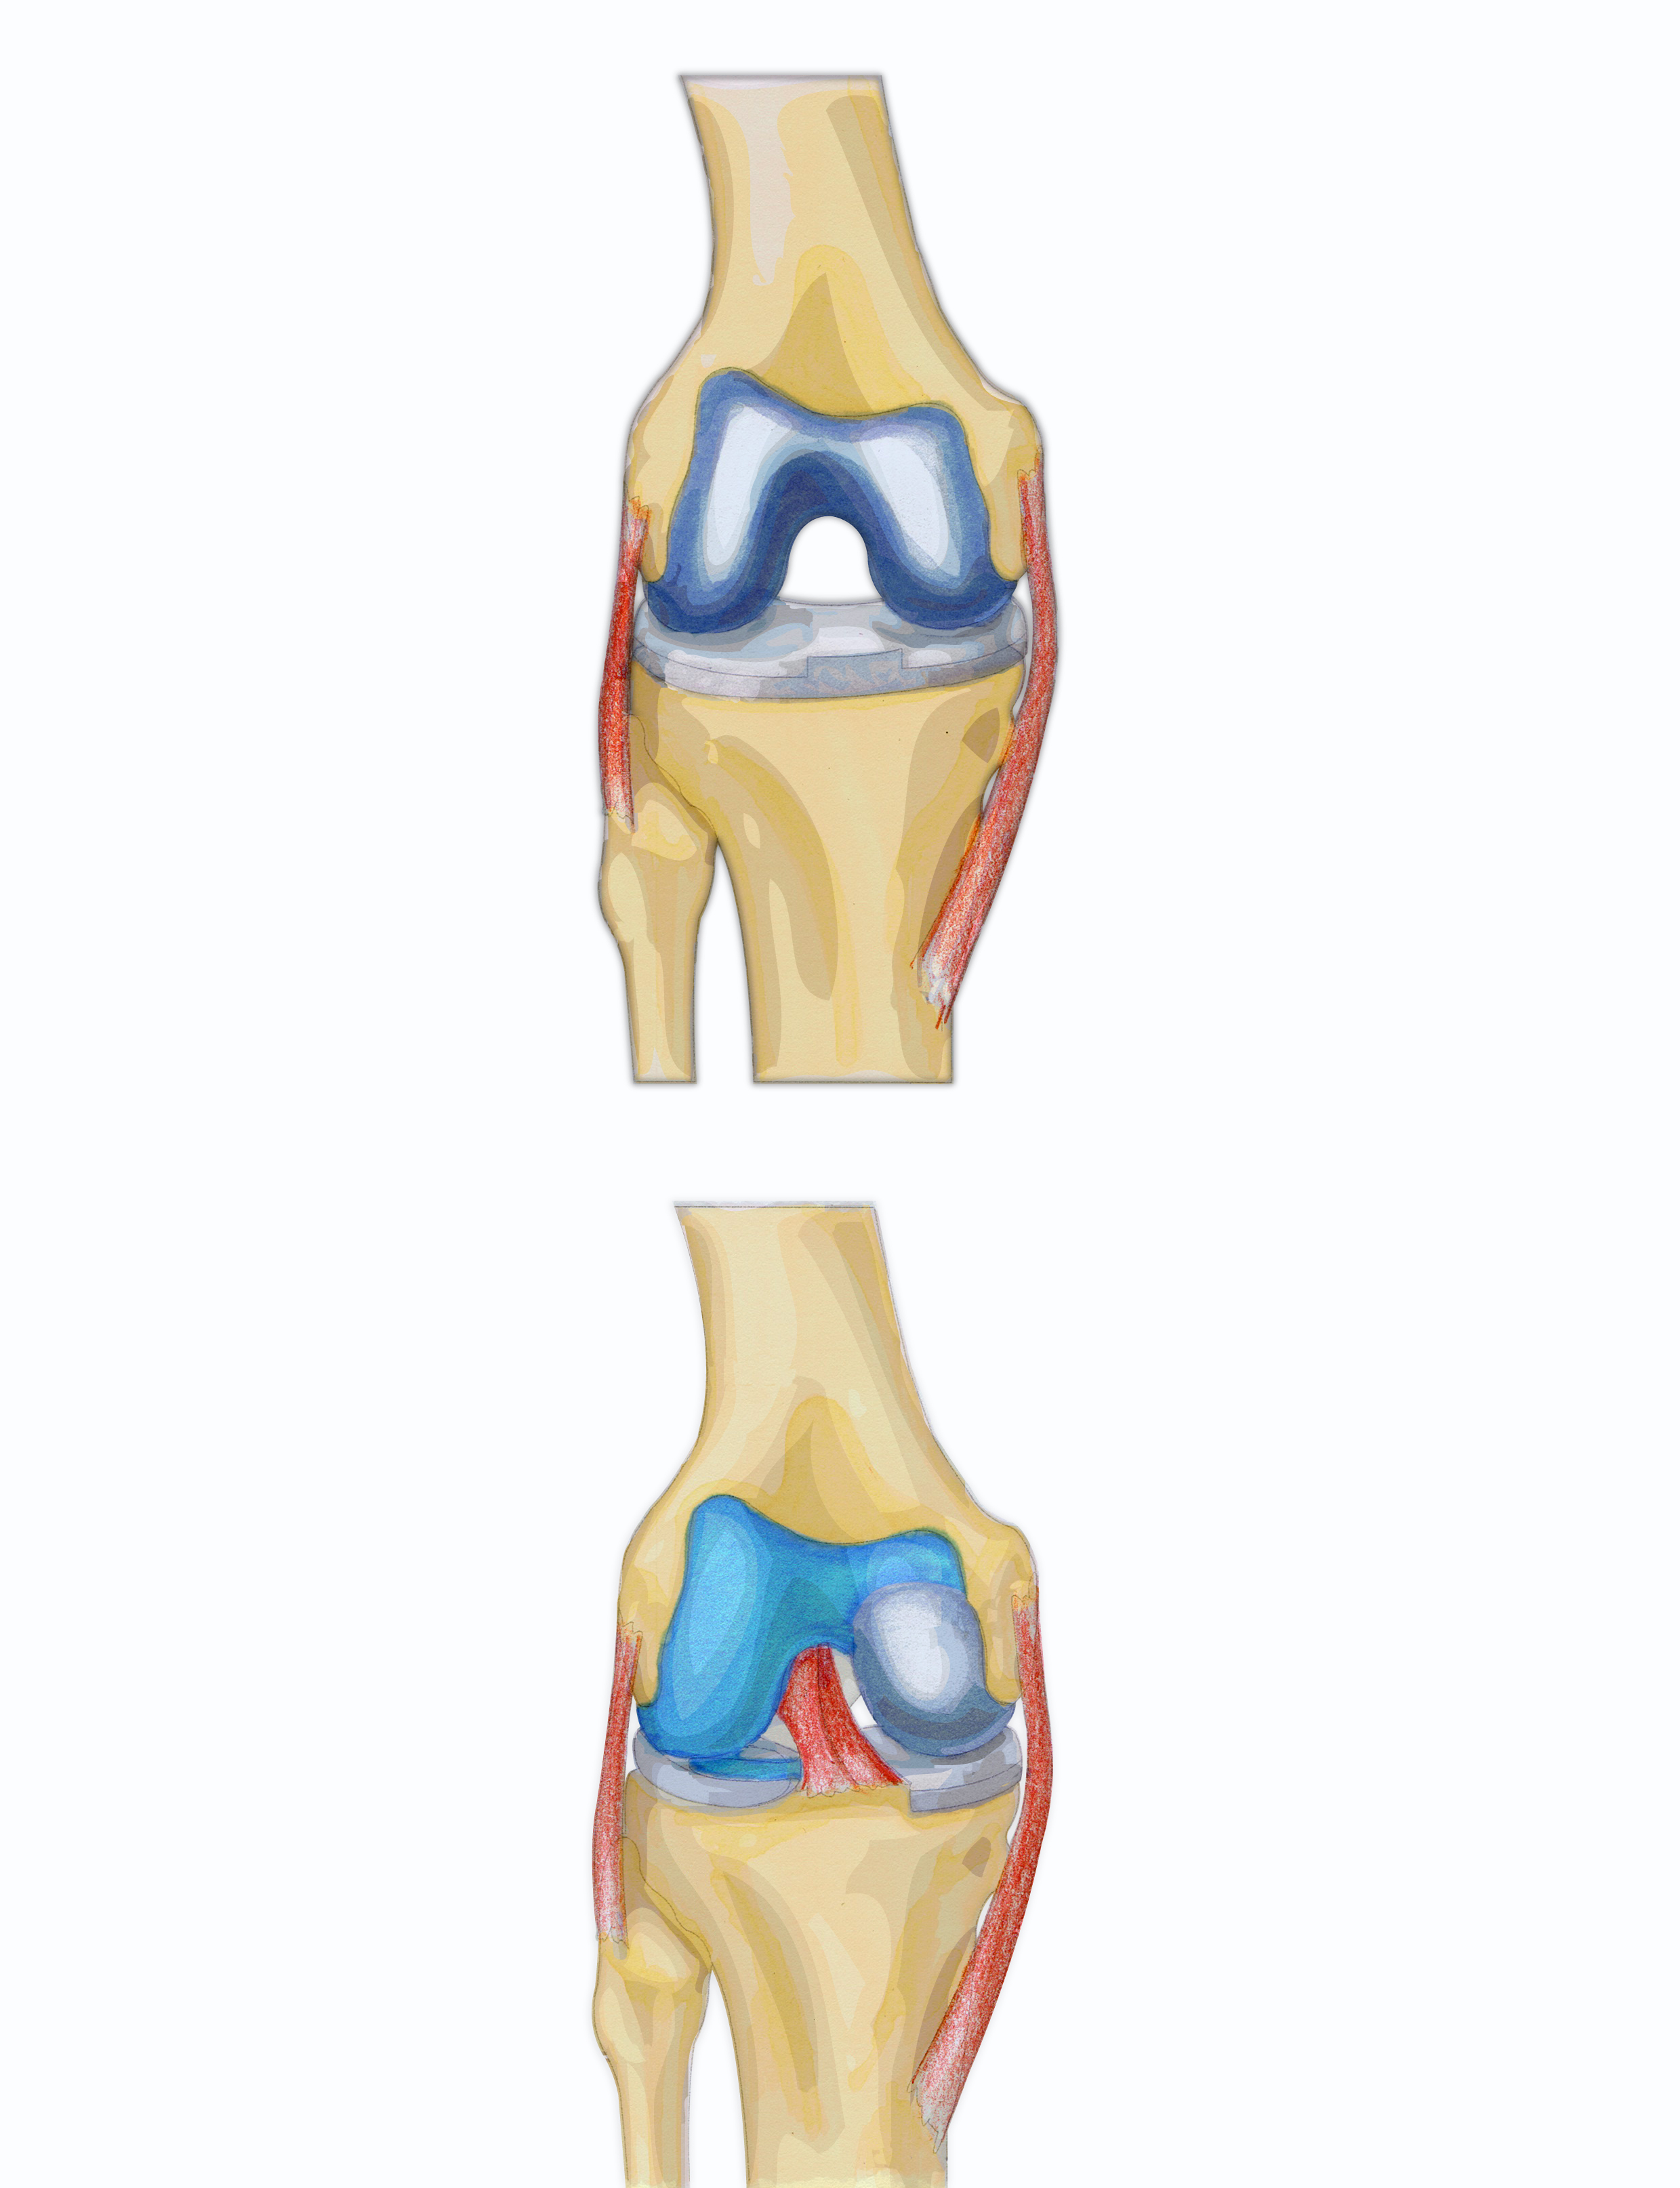 Unlabeled diagram of knee auto electrical wiring diagram partial knee replacement orthopaedic tony gibbon rh tony gibbon co uk knee diagram worksheets knee bones ccuart Gallery